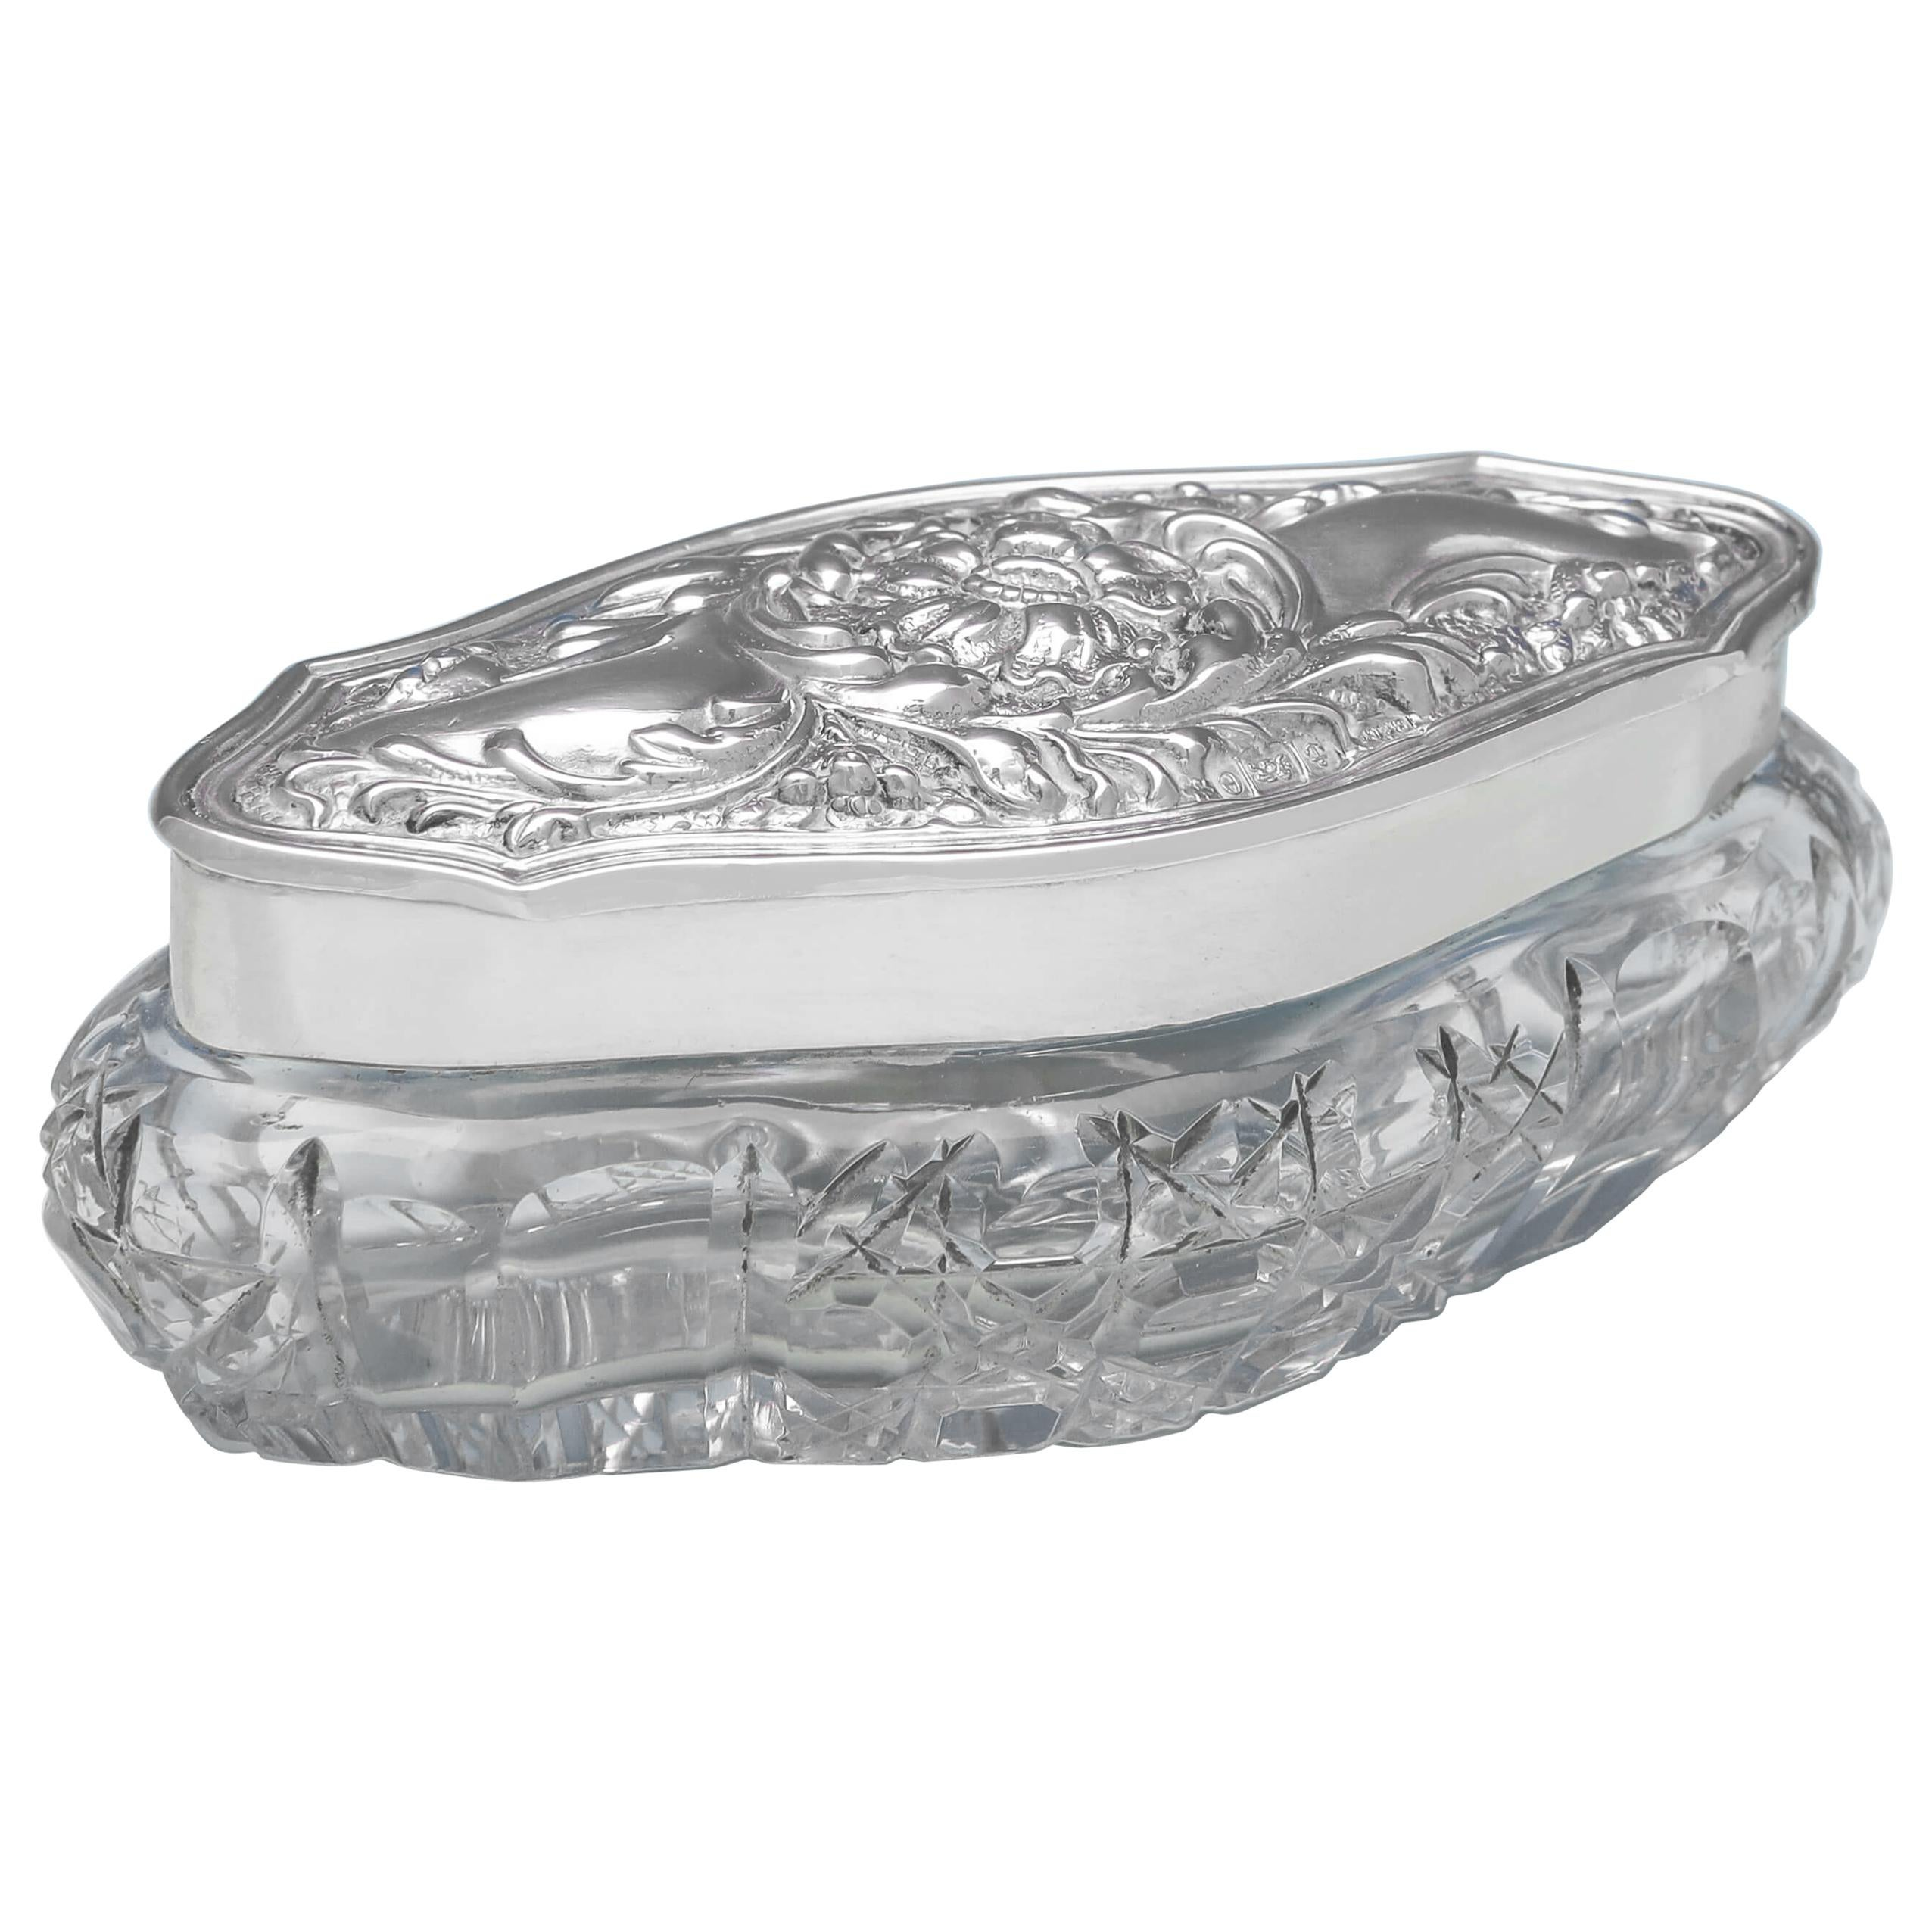 Art Nouveau Antique Sterling Silver Dressing Table Box by Henry Bushell, 1904